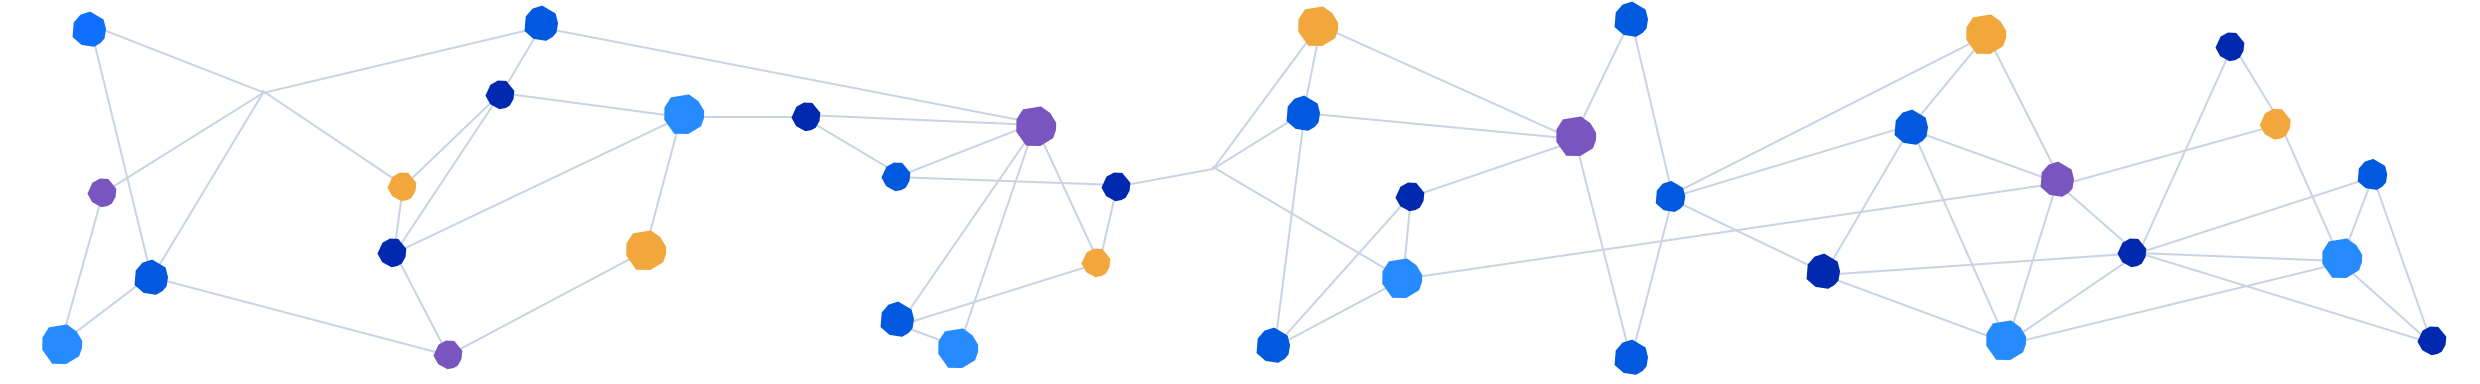 A startup network